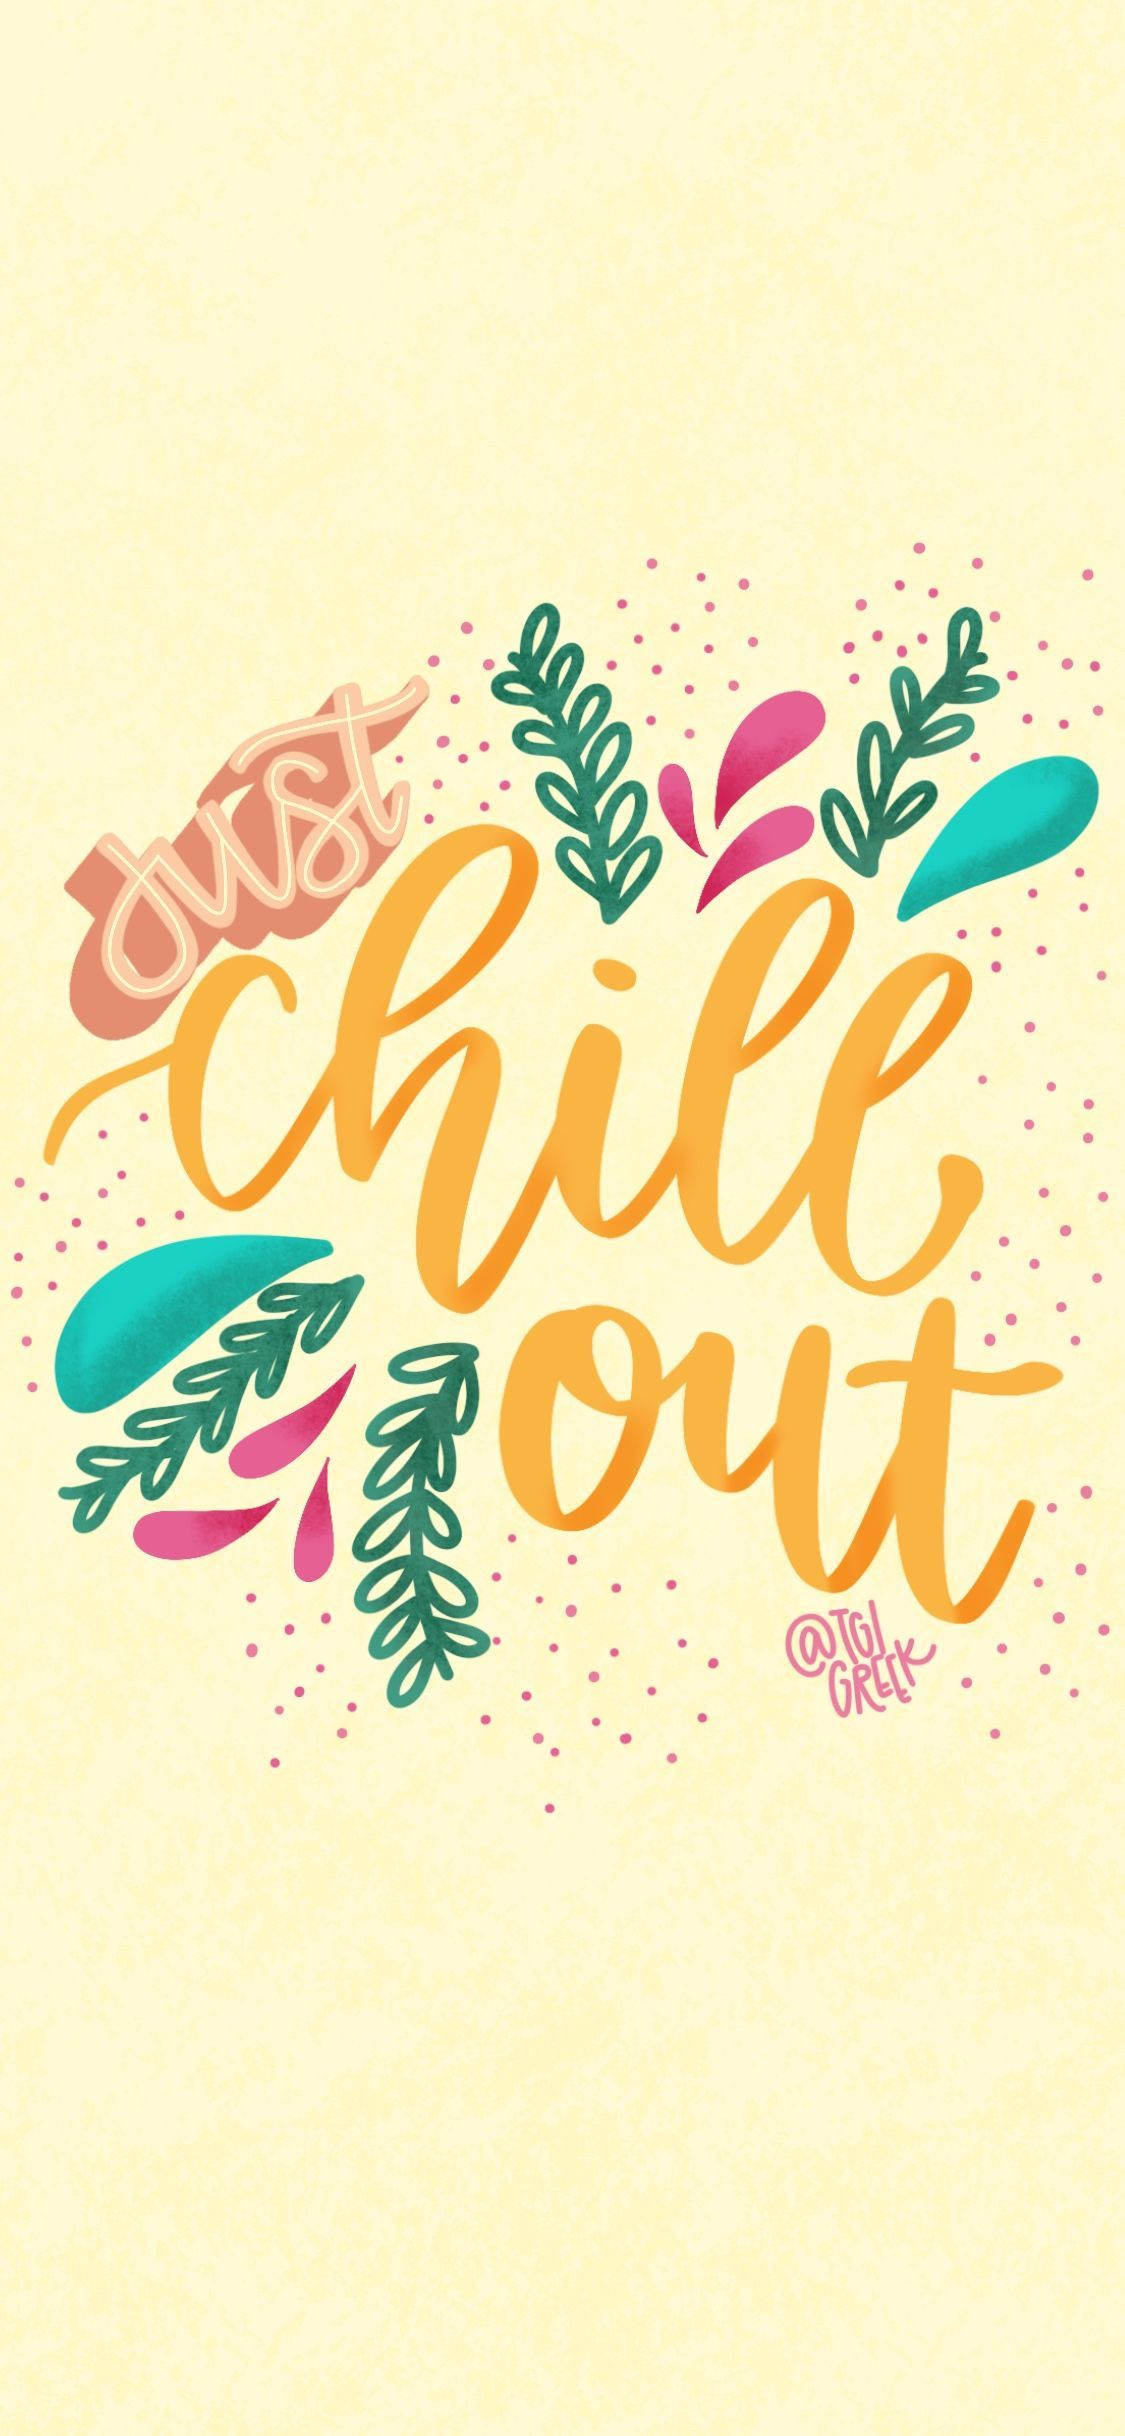 Phone Background Chill Out Free Phone Backgrounds Design Library Tgi Greek Pretty Quotes Happy Wallpaper Wallpaper Quotes